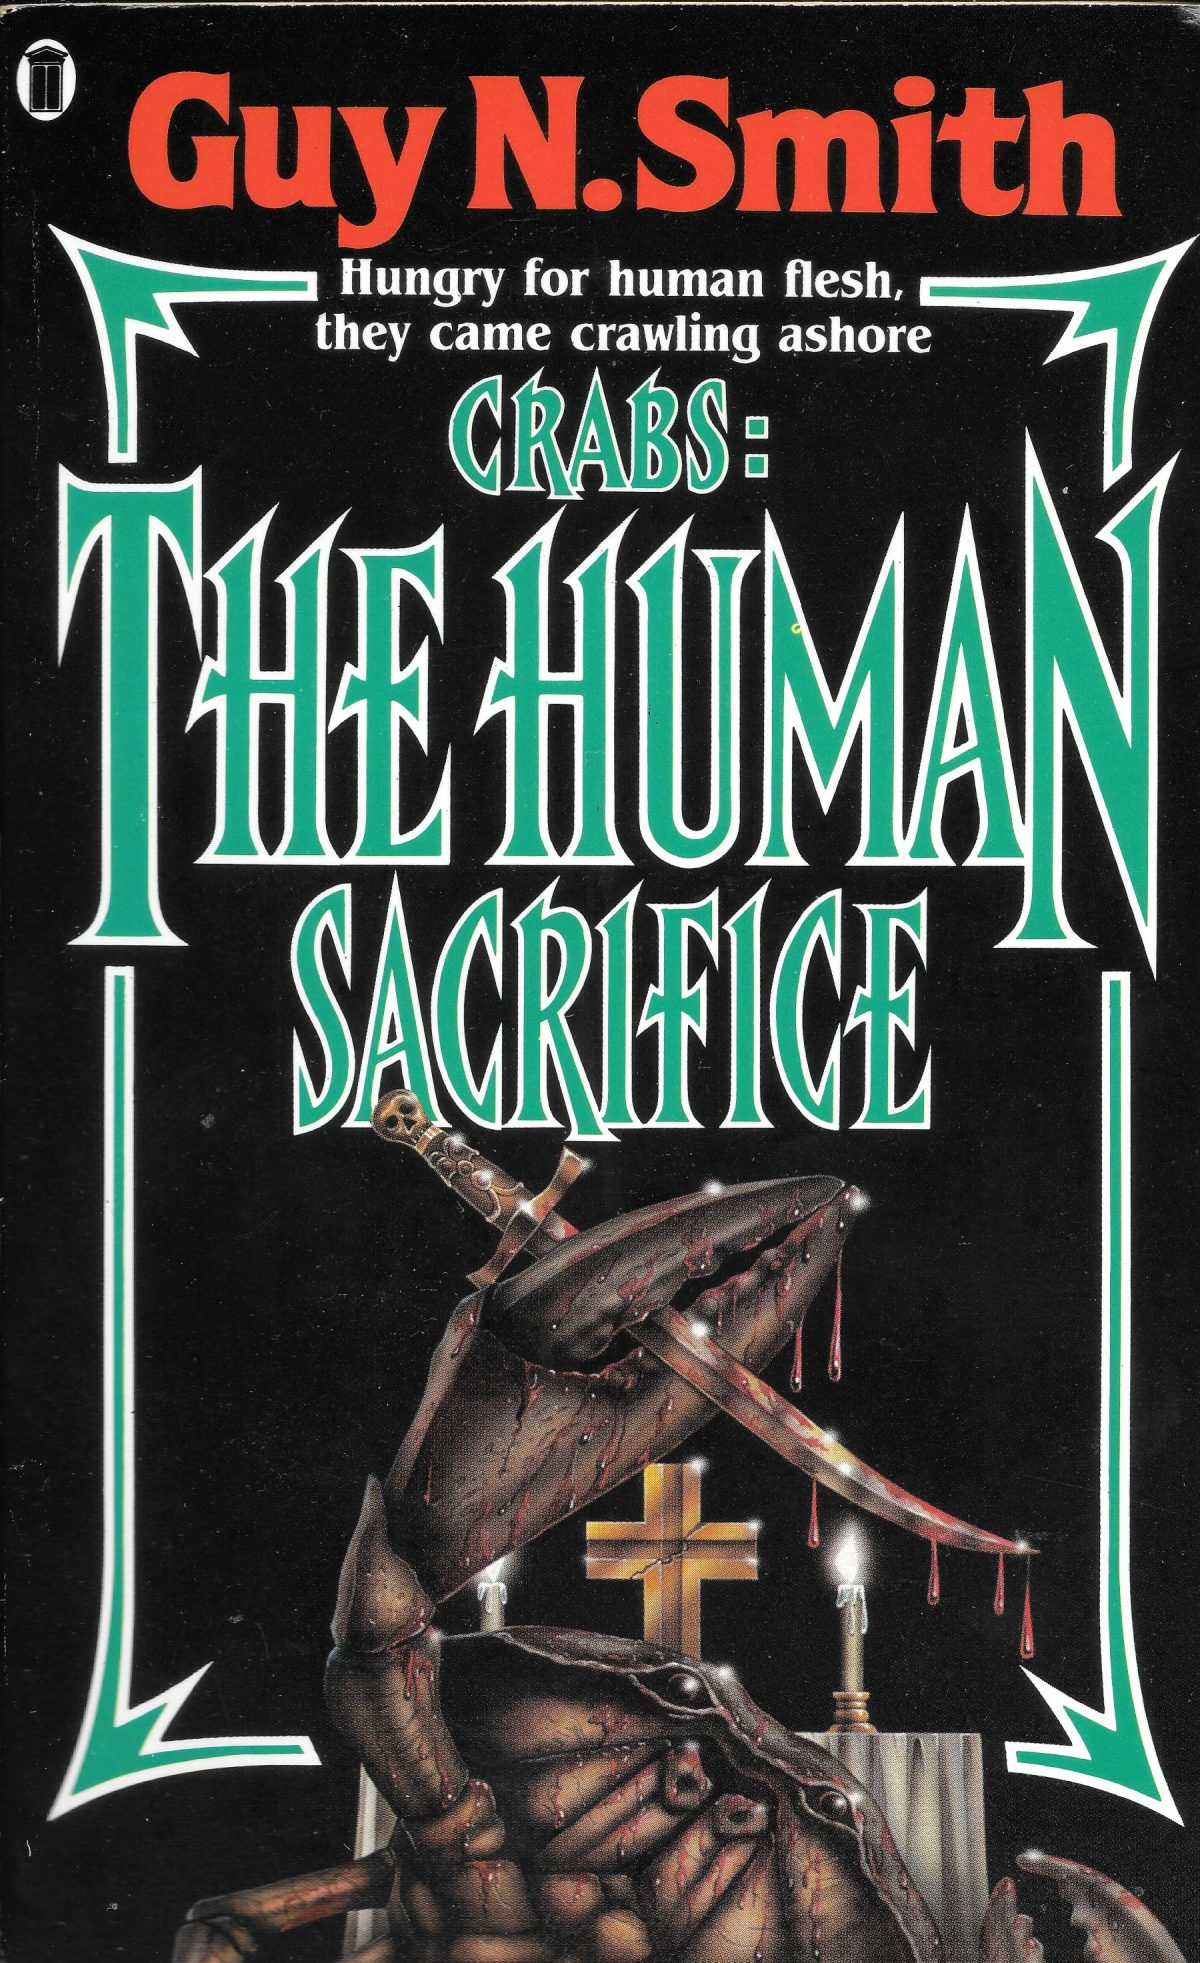 Guy N Smith, horror fictions, horror, books, Crabs The Human Sacrifice